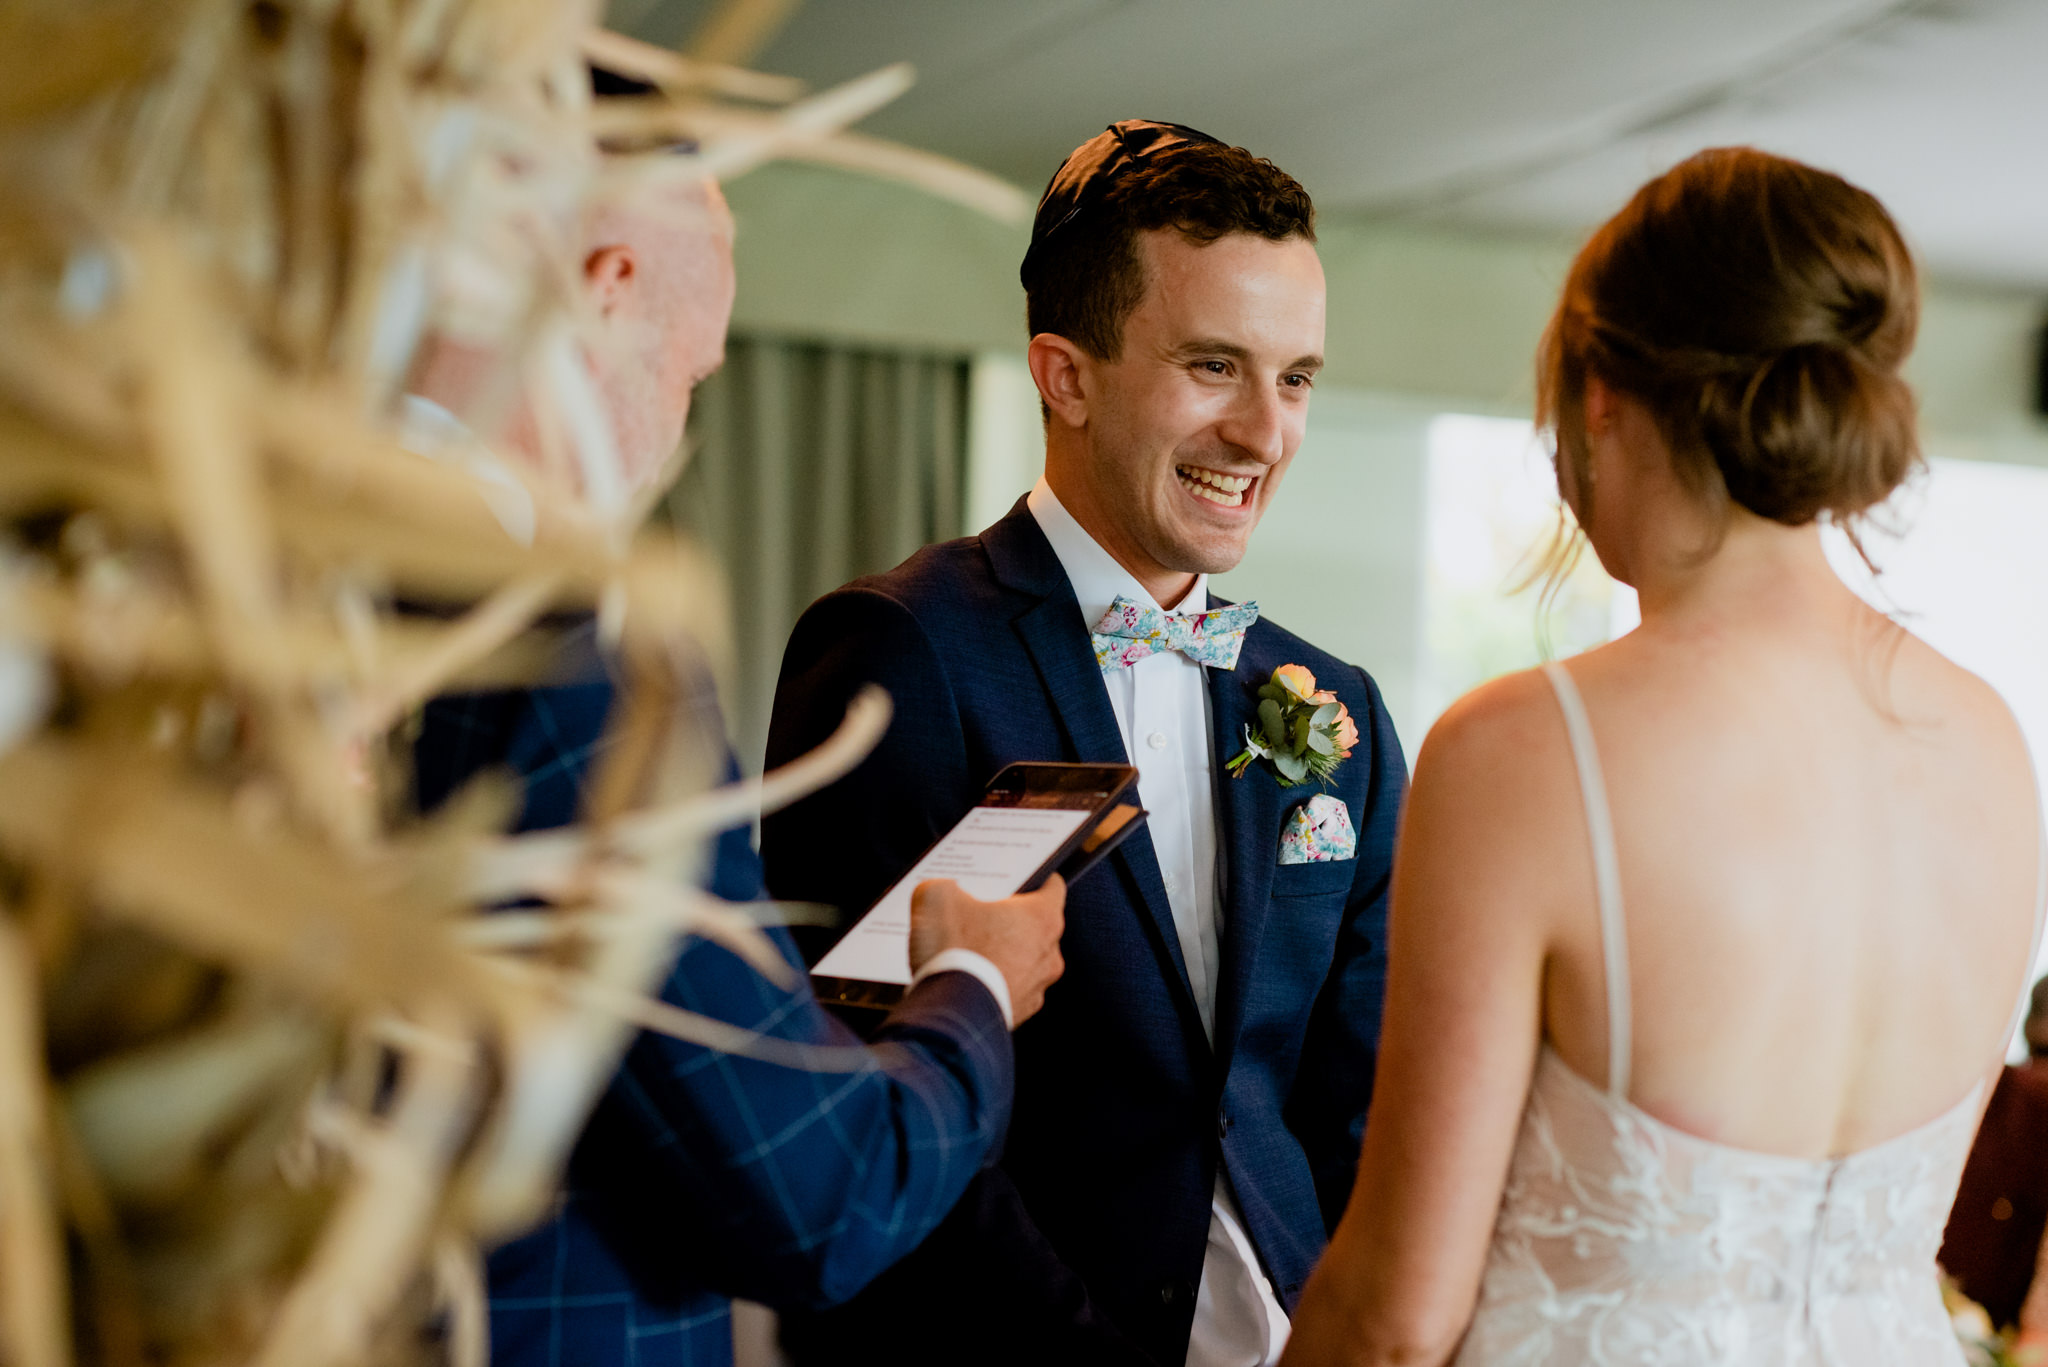 Groom smiles and laughs nervously at wife-to-be during wedding